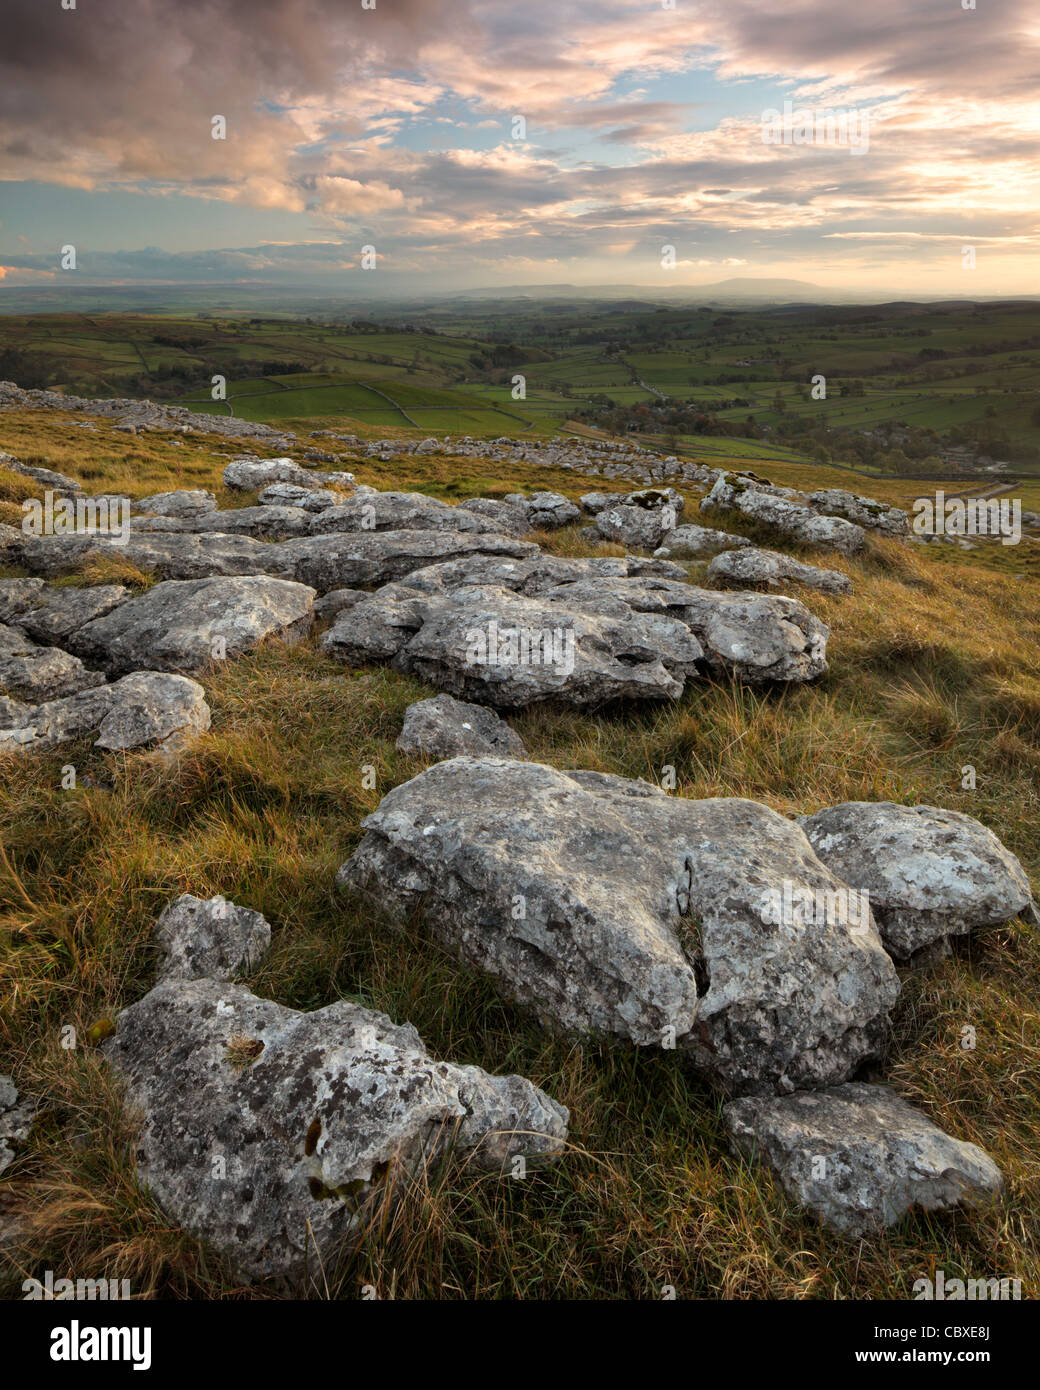 Evening light on the beautiful and rugged landscape of Malhamdale, Yorkshire, England - Stock Image